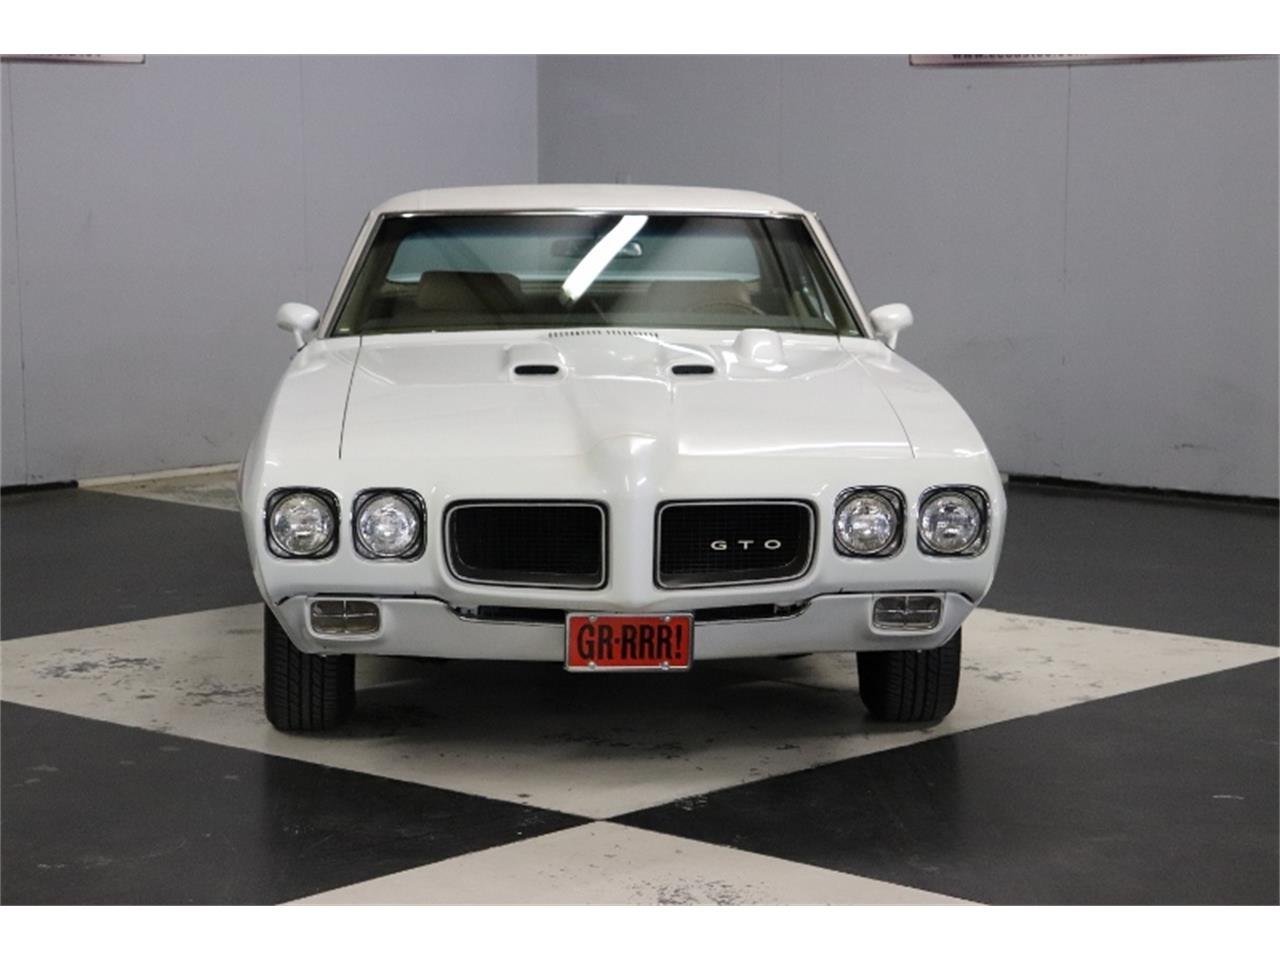 1970 Pontiac GTO (The Judge) (CC-1329929) for sale in Lillington, North Carolina